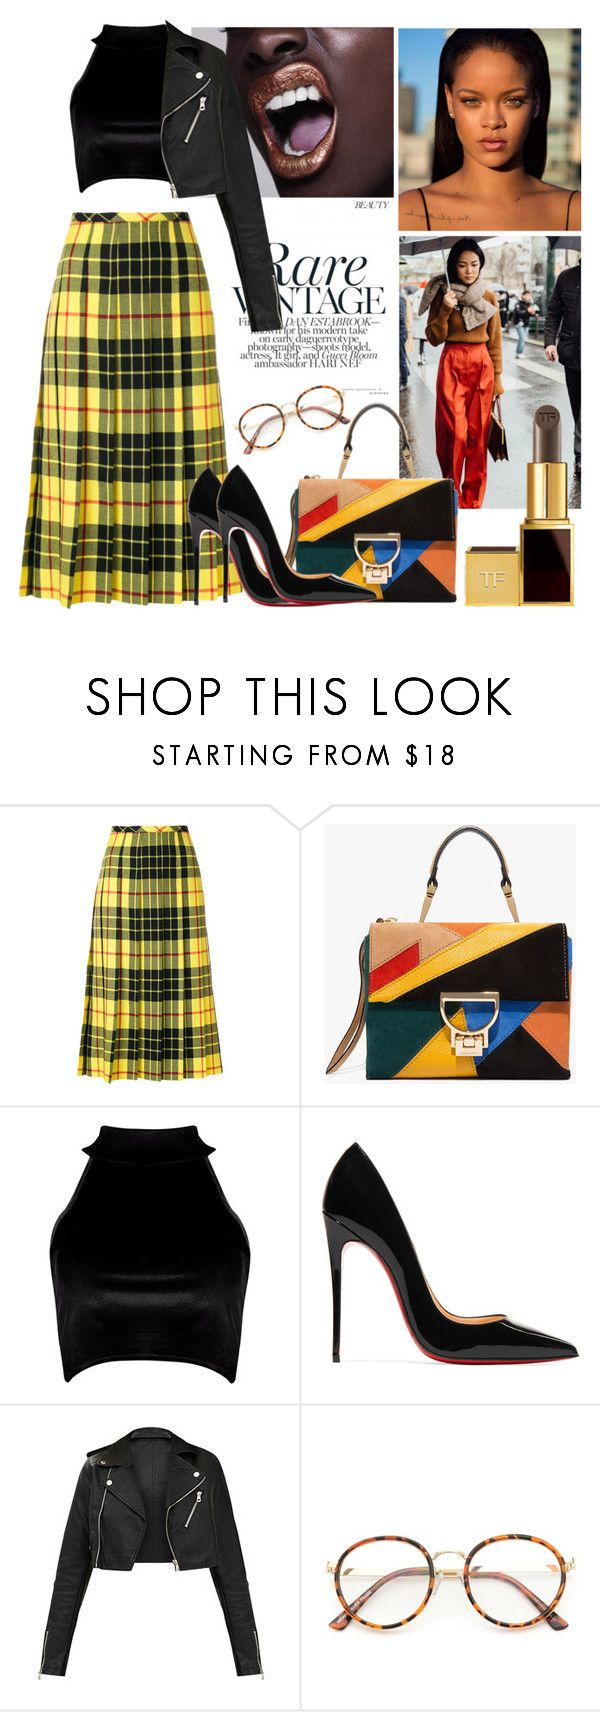 """""""Clueless part 2"""" by oshonsparkles ❤ liked on Polyvore featuring Junya Watanabe Comme des Garçons, Boohoo and Christian Louboutin"""